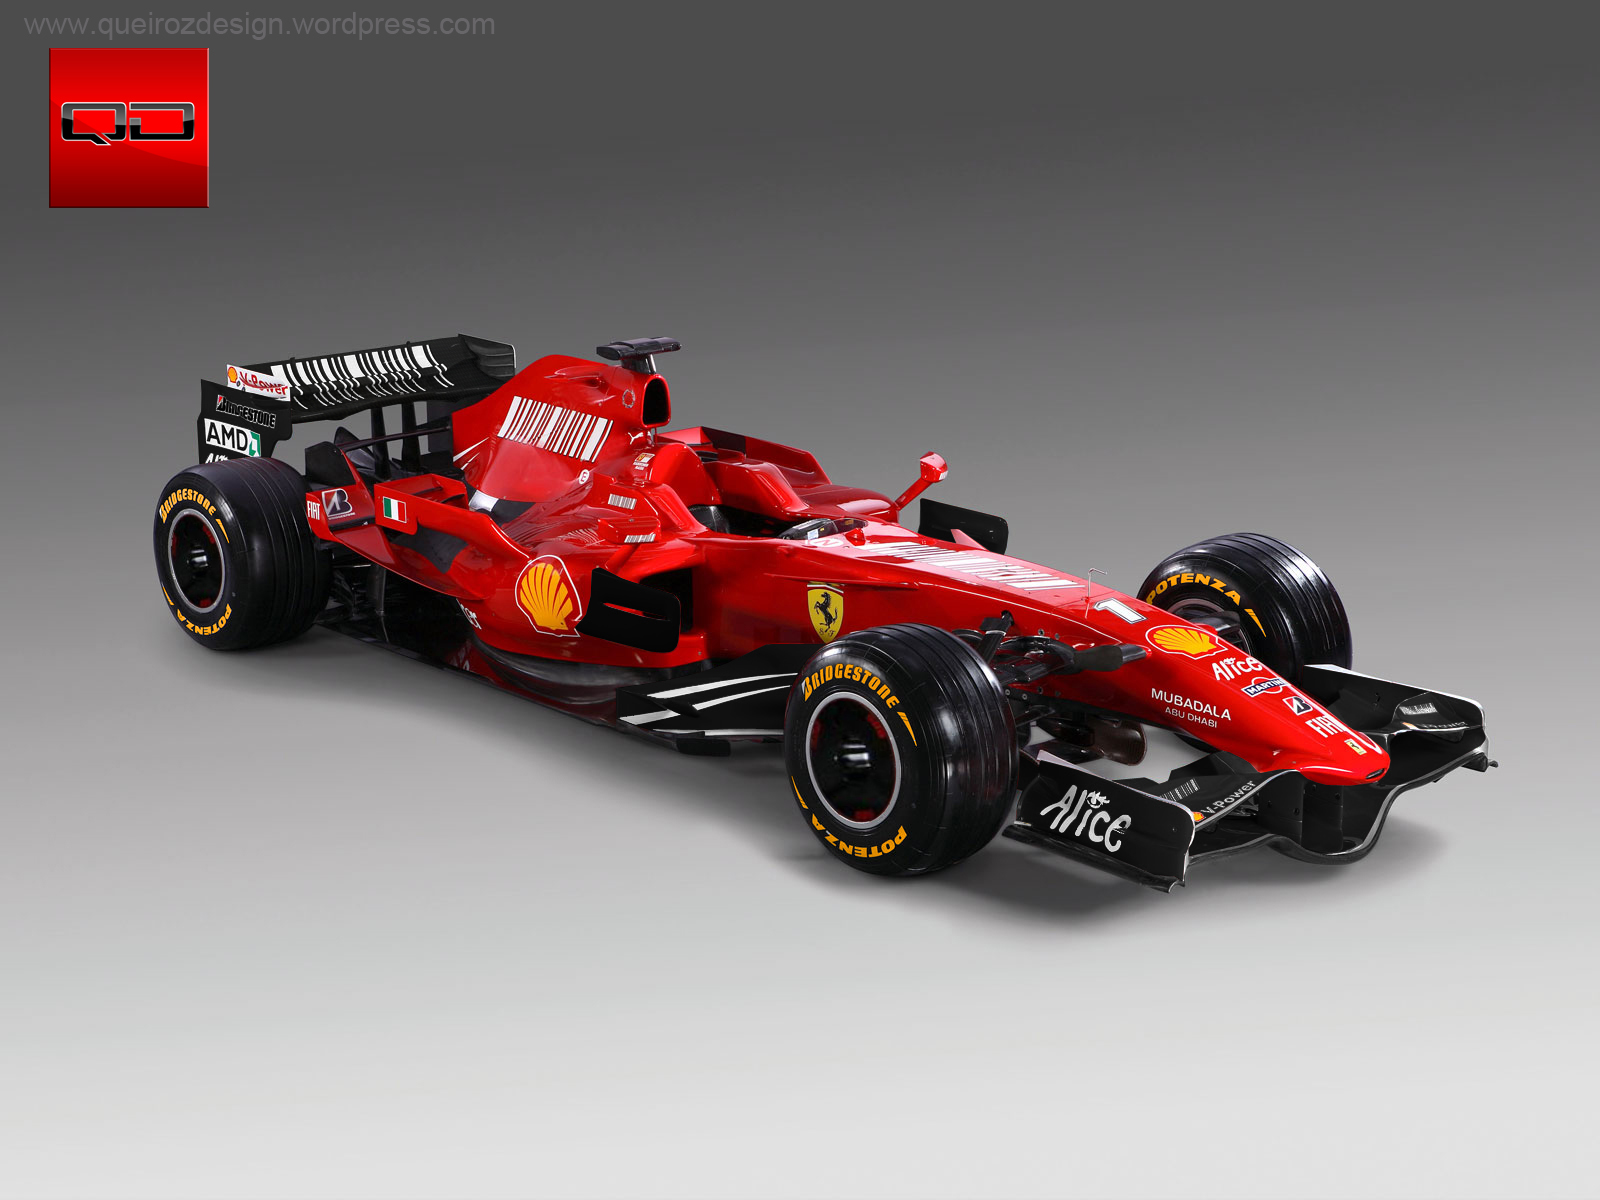 Ferrari F61 2010 F1 World Cars Wallpaper For Android